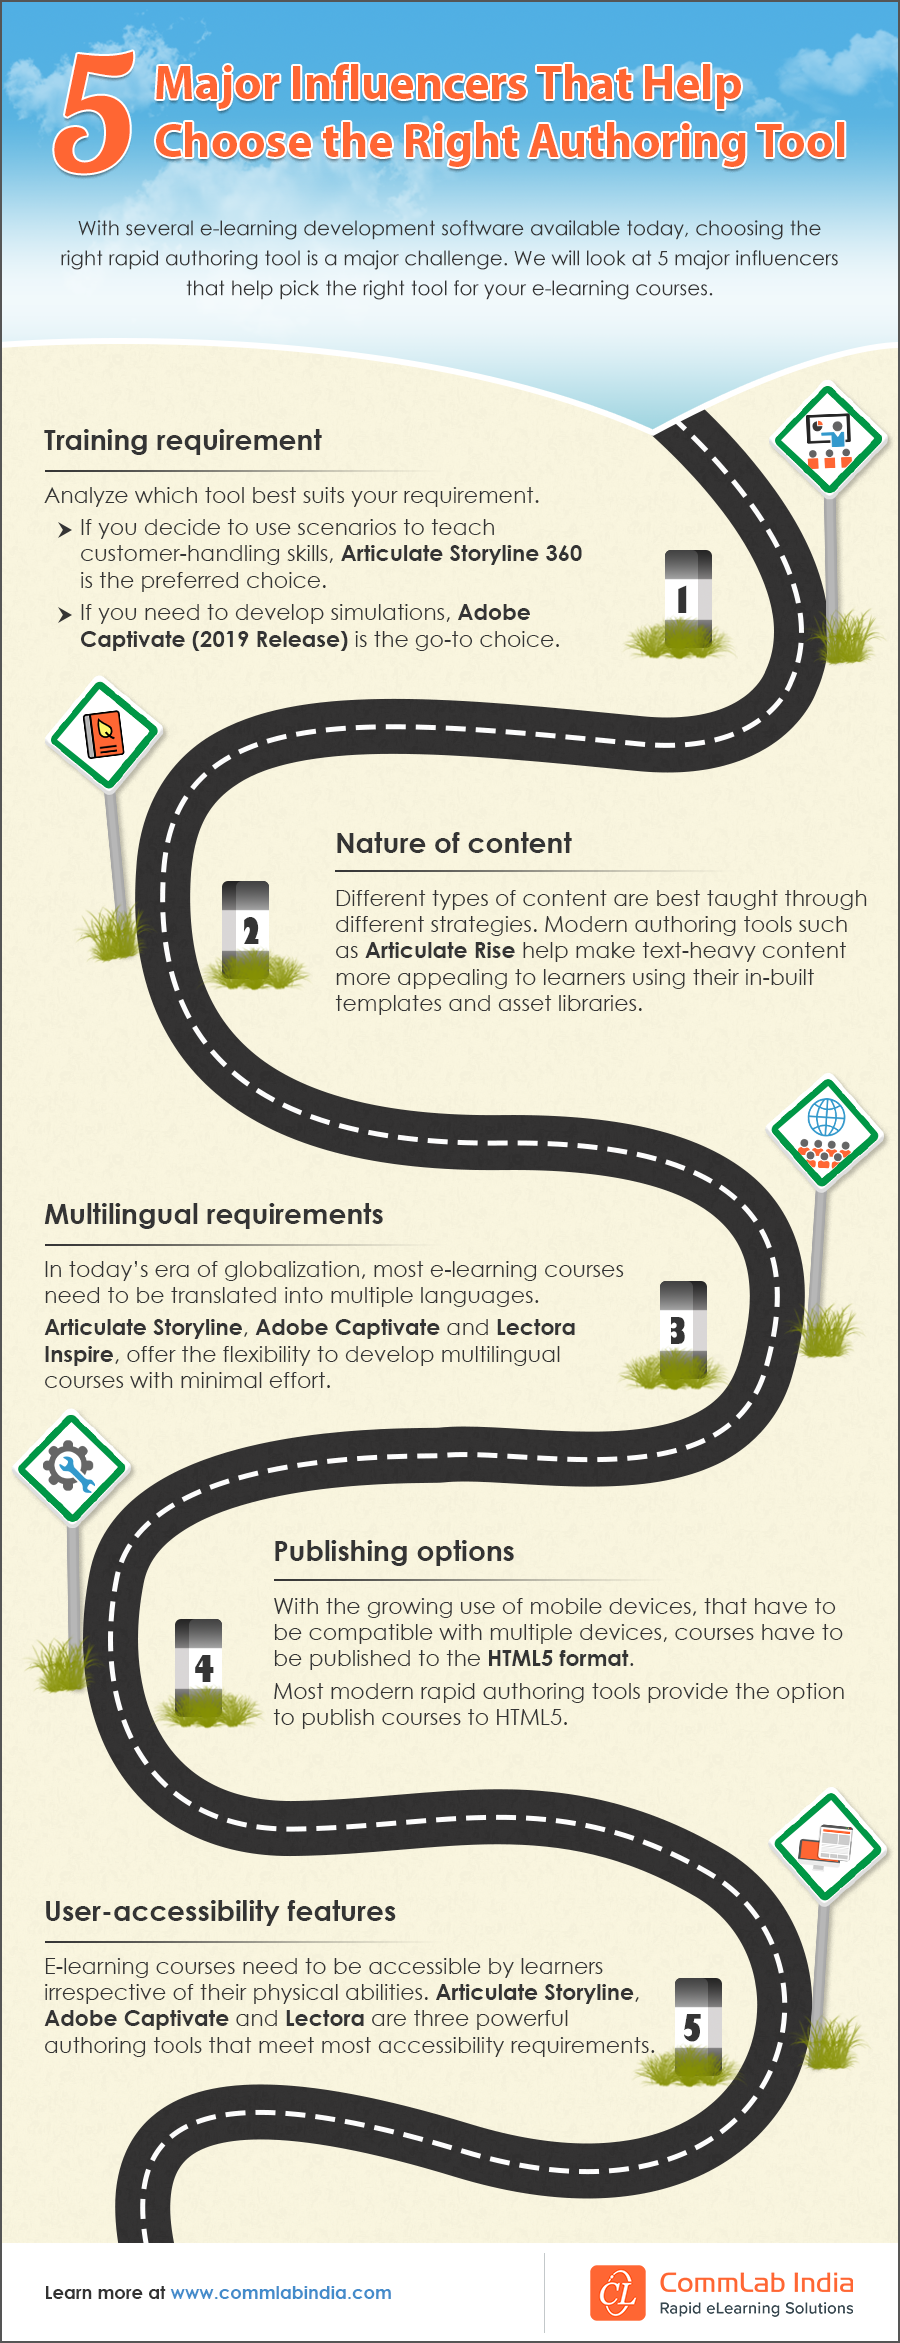 5 Major Influencers That Help Choose the Right Authoring Tool [Infographic]